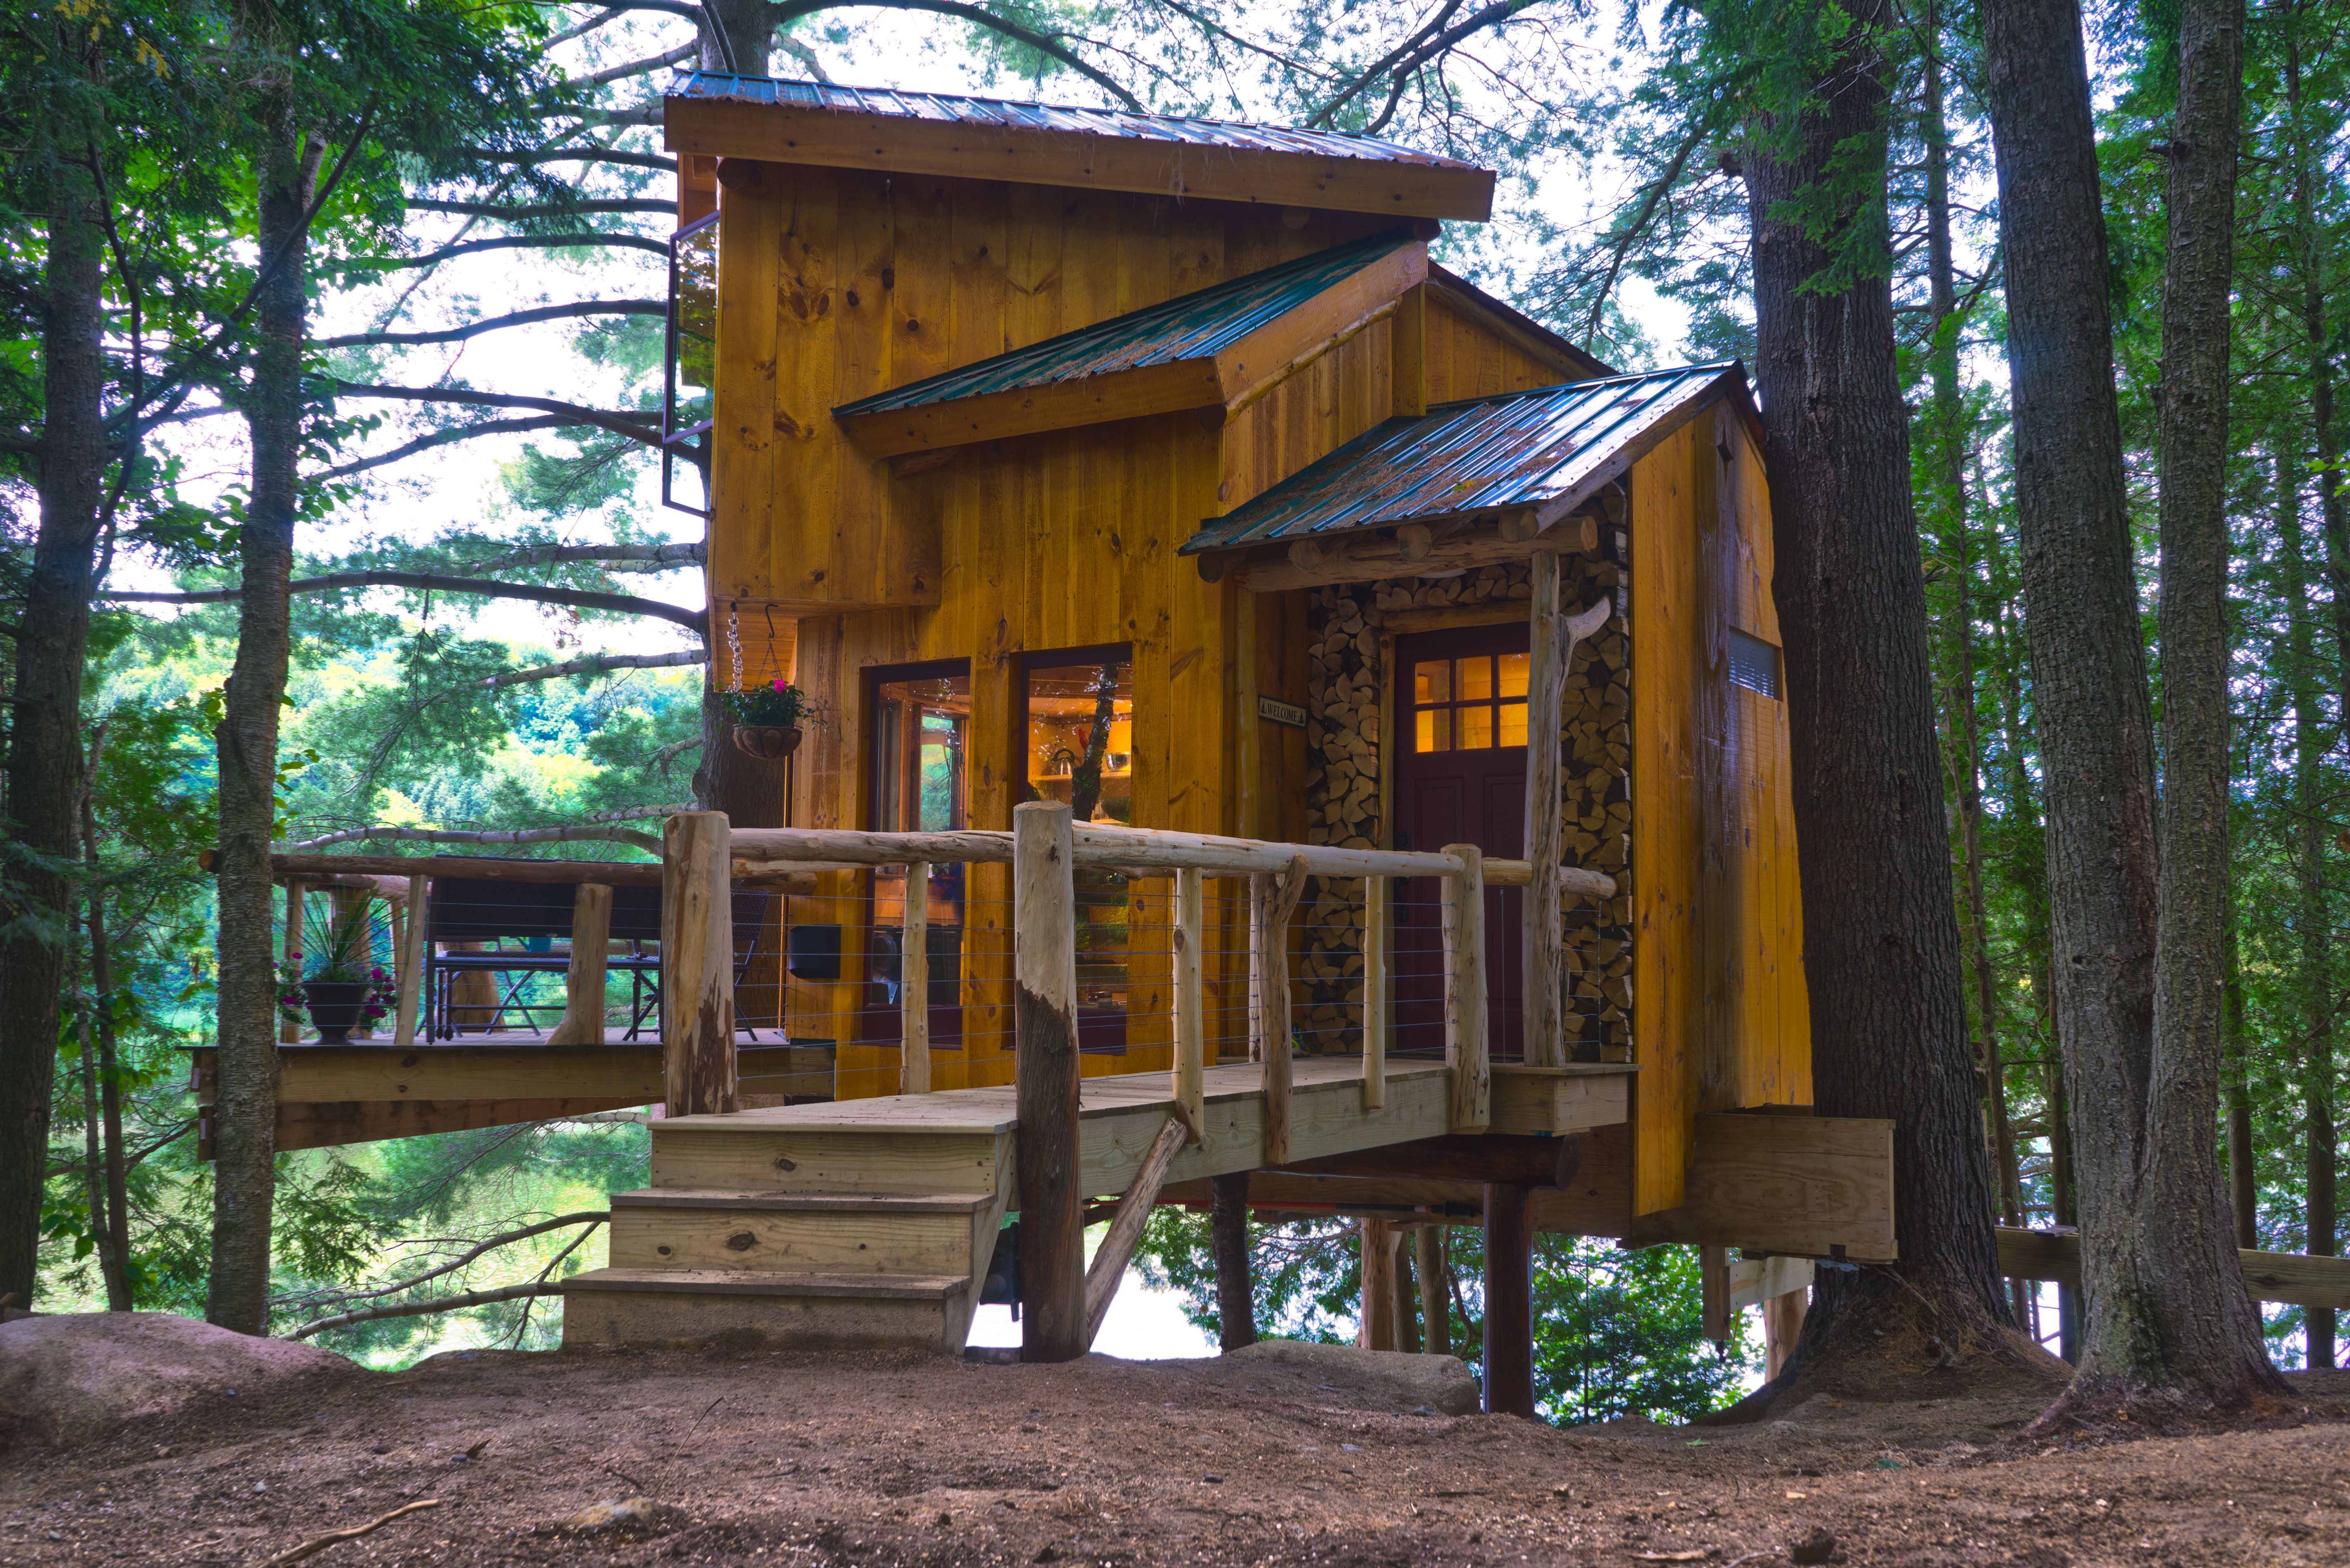 http://vermonttreecabin.com/treehouse-walker-pond/